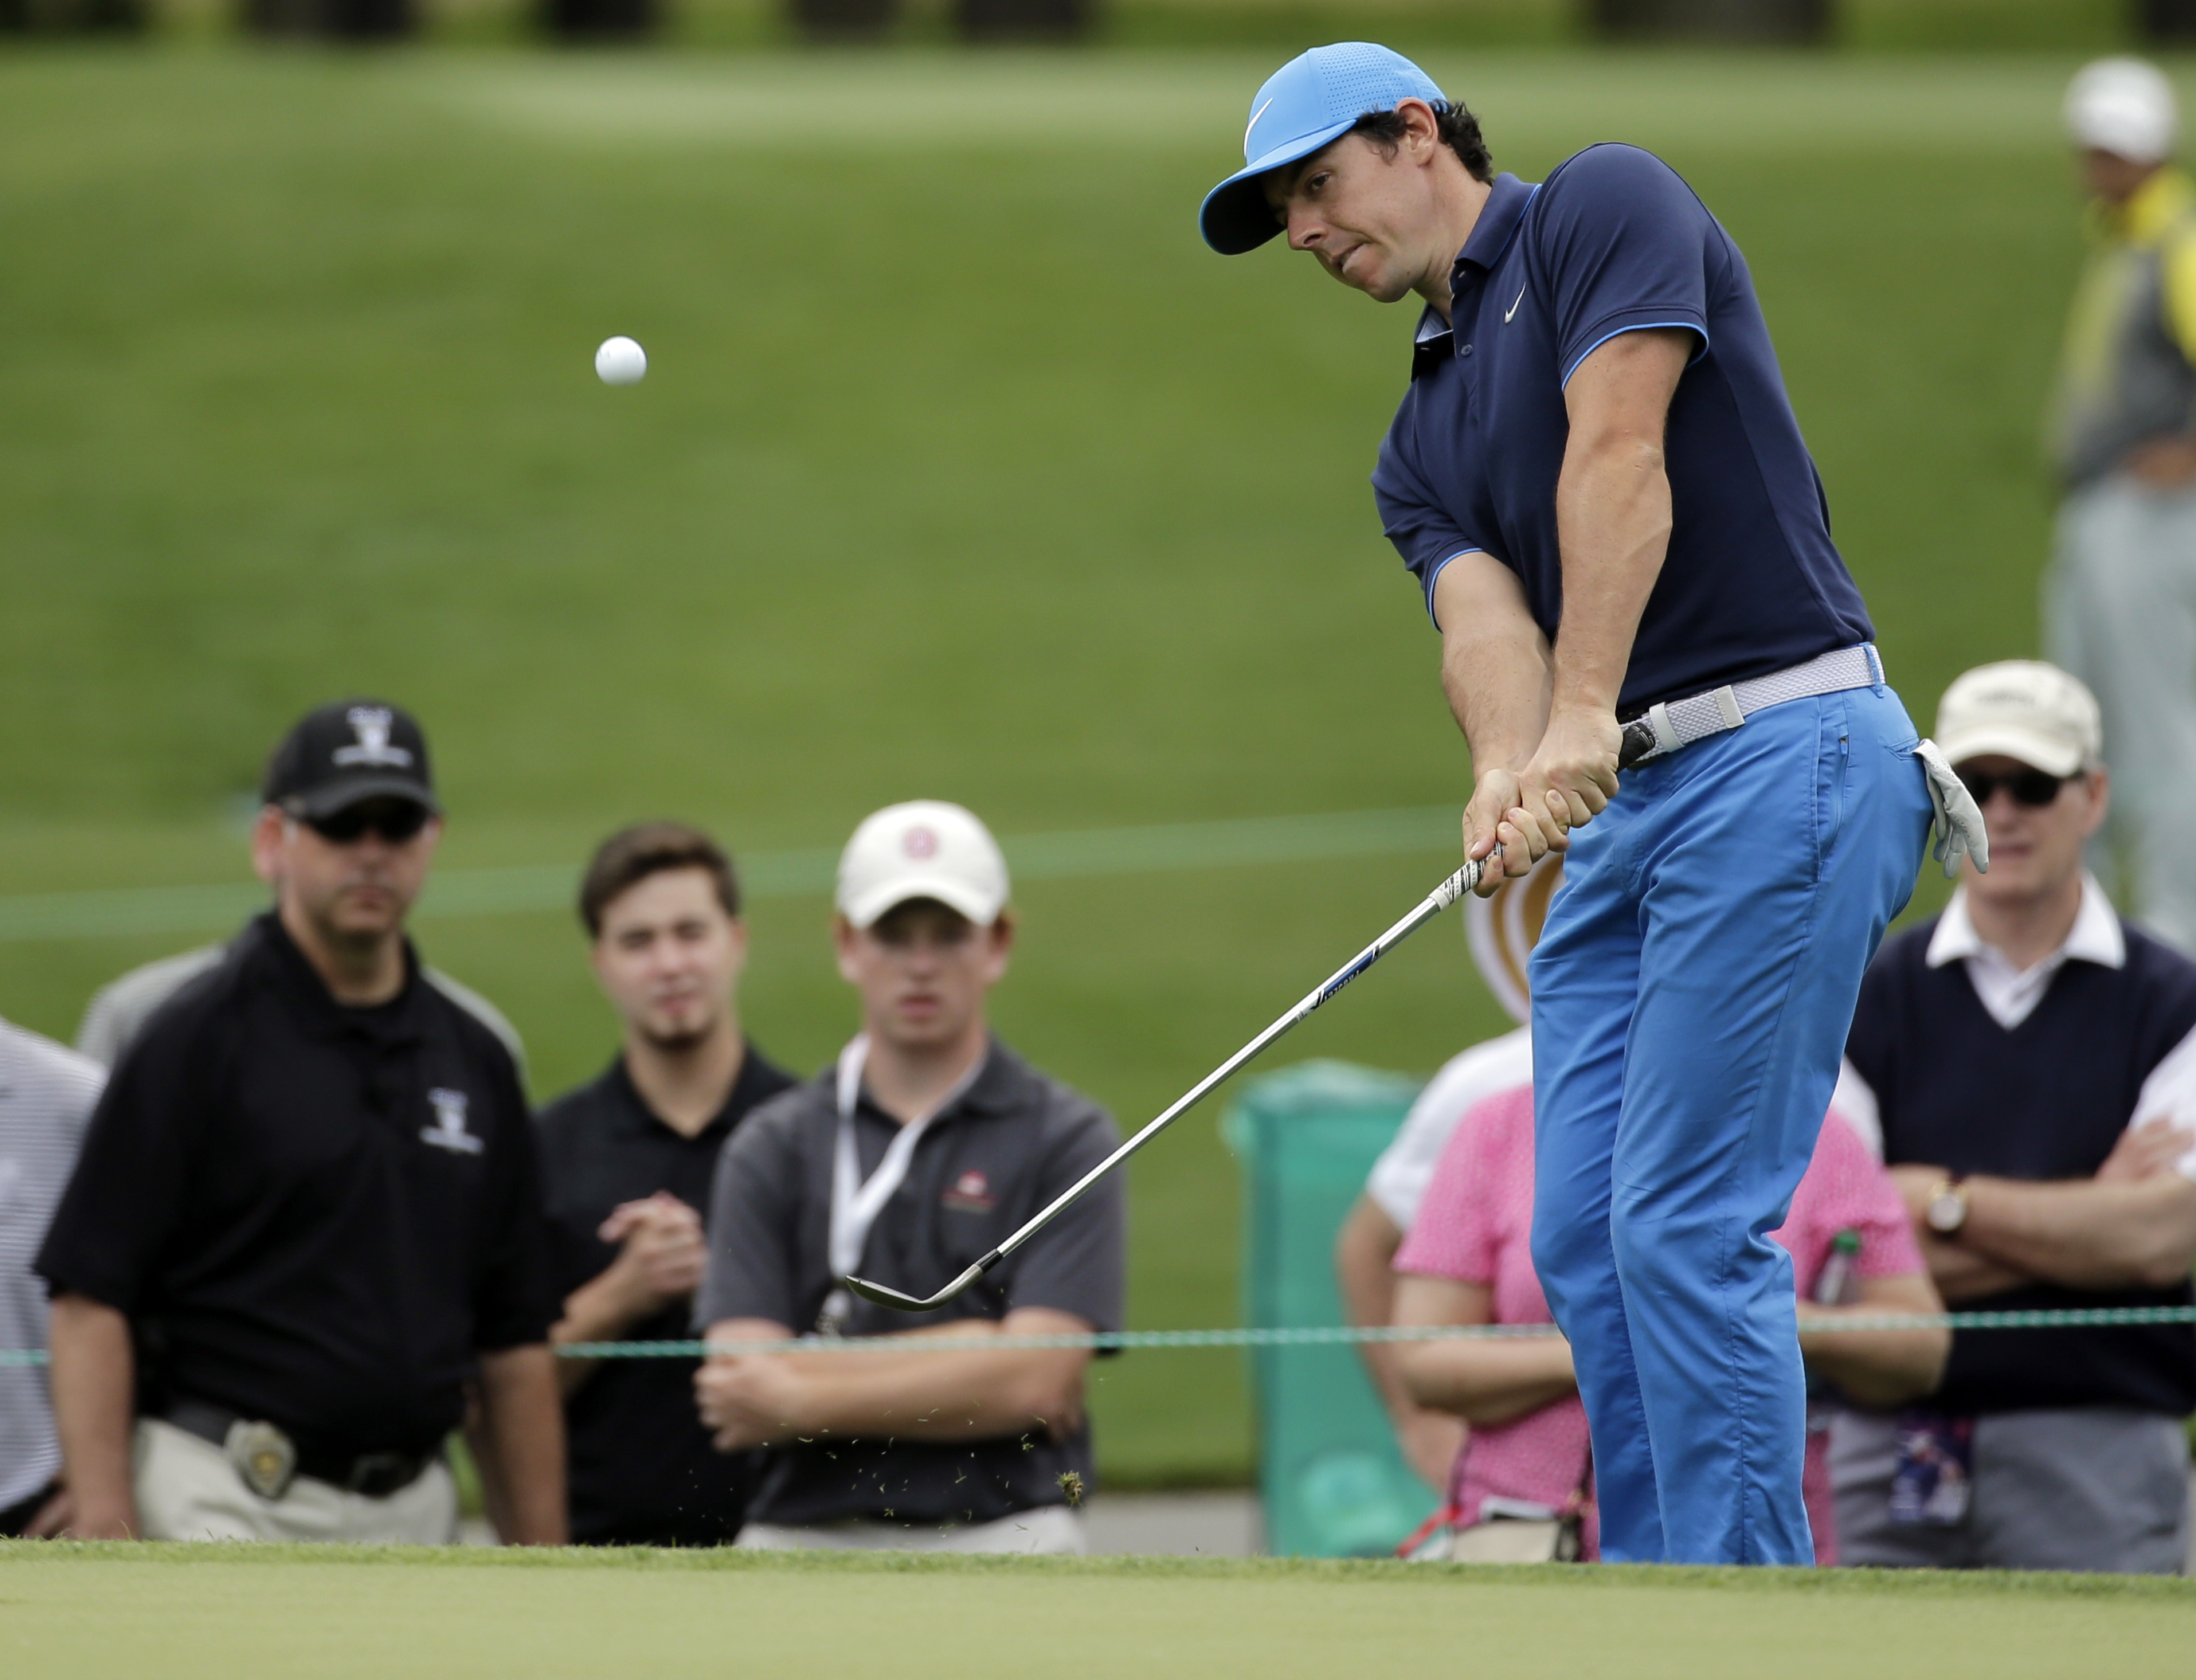 Rory McIlroy chips to the second green during the pro-am of the Wells Fargo Championship golf tournament at Quail Hollow Club in Charlotte, N.C., Wednesday, May 4, 2016. (AP Photo/Chuck Burton)